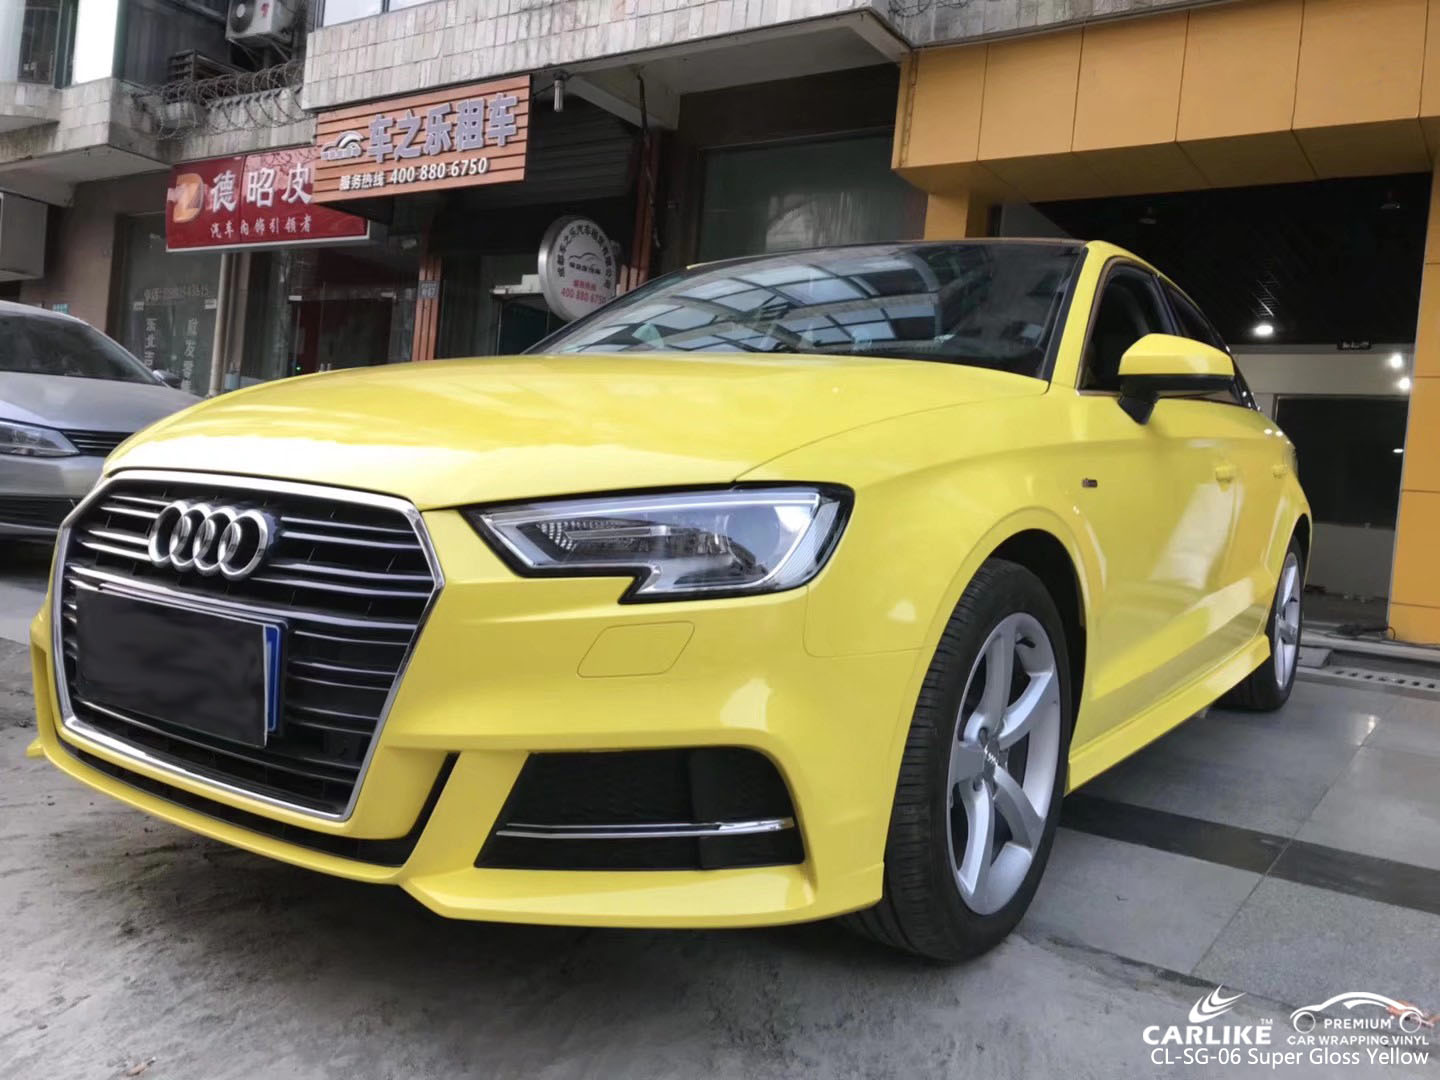 CARLIKE CL-SG-06 SUPER GLOSS YELLOW CAR WRAP FOR AUDI